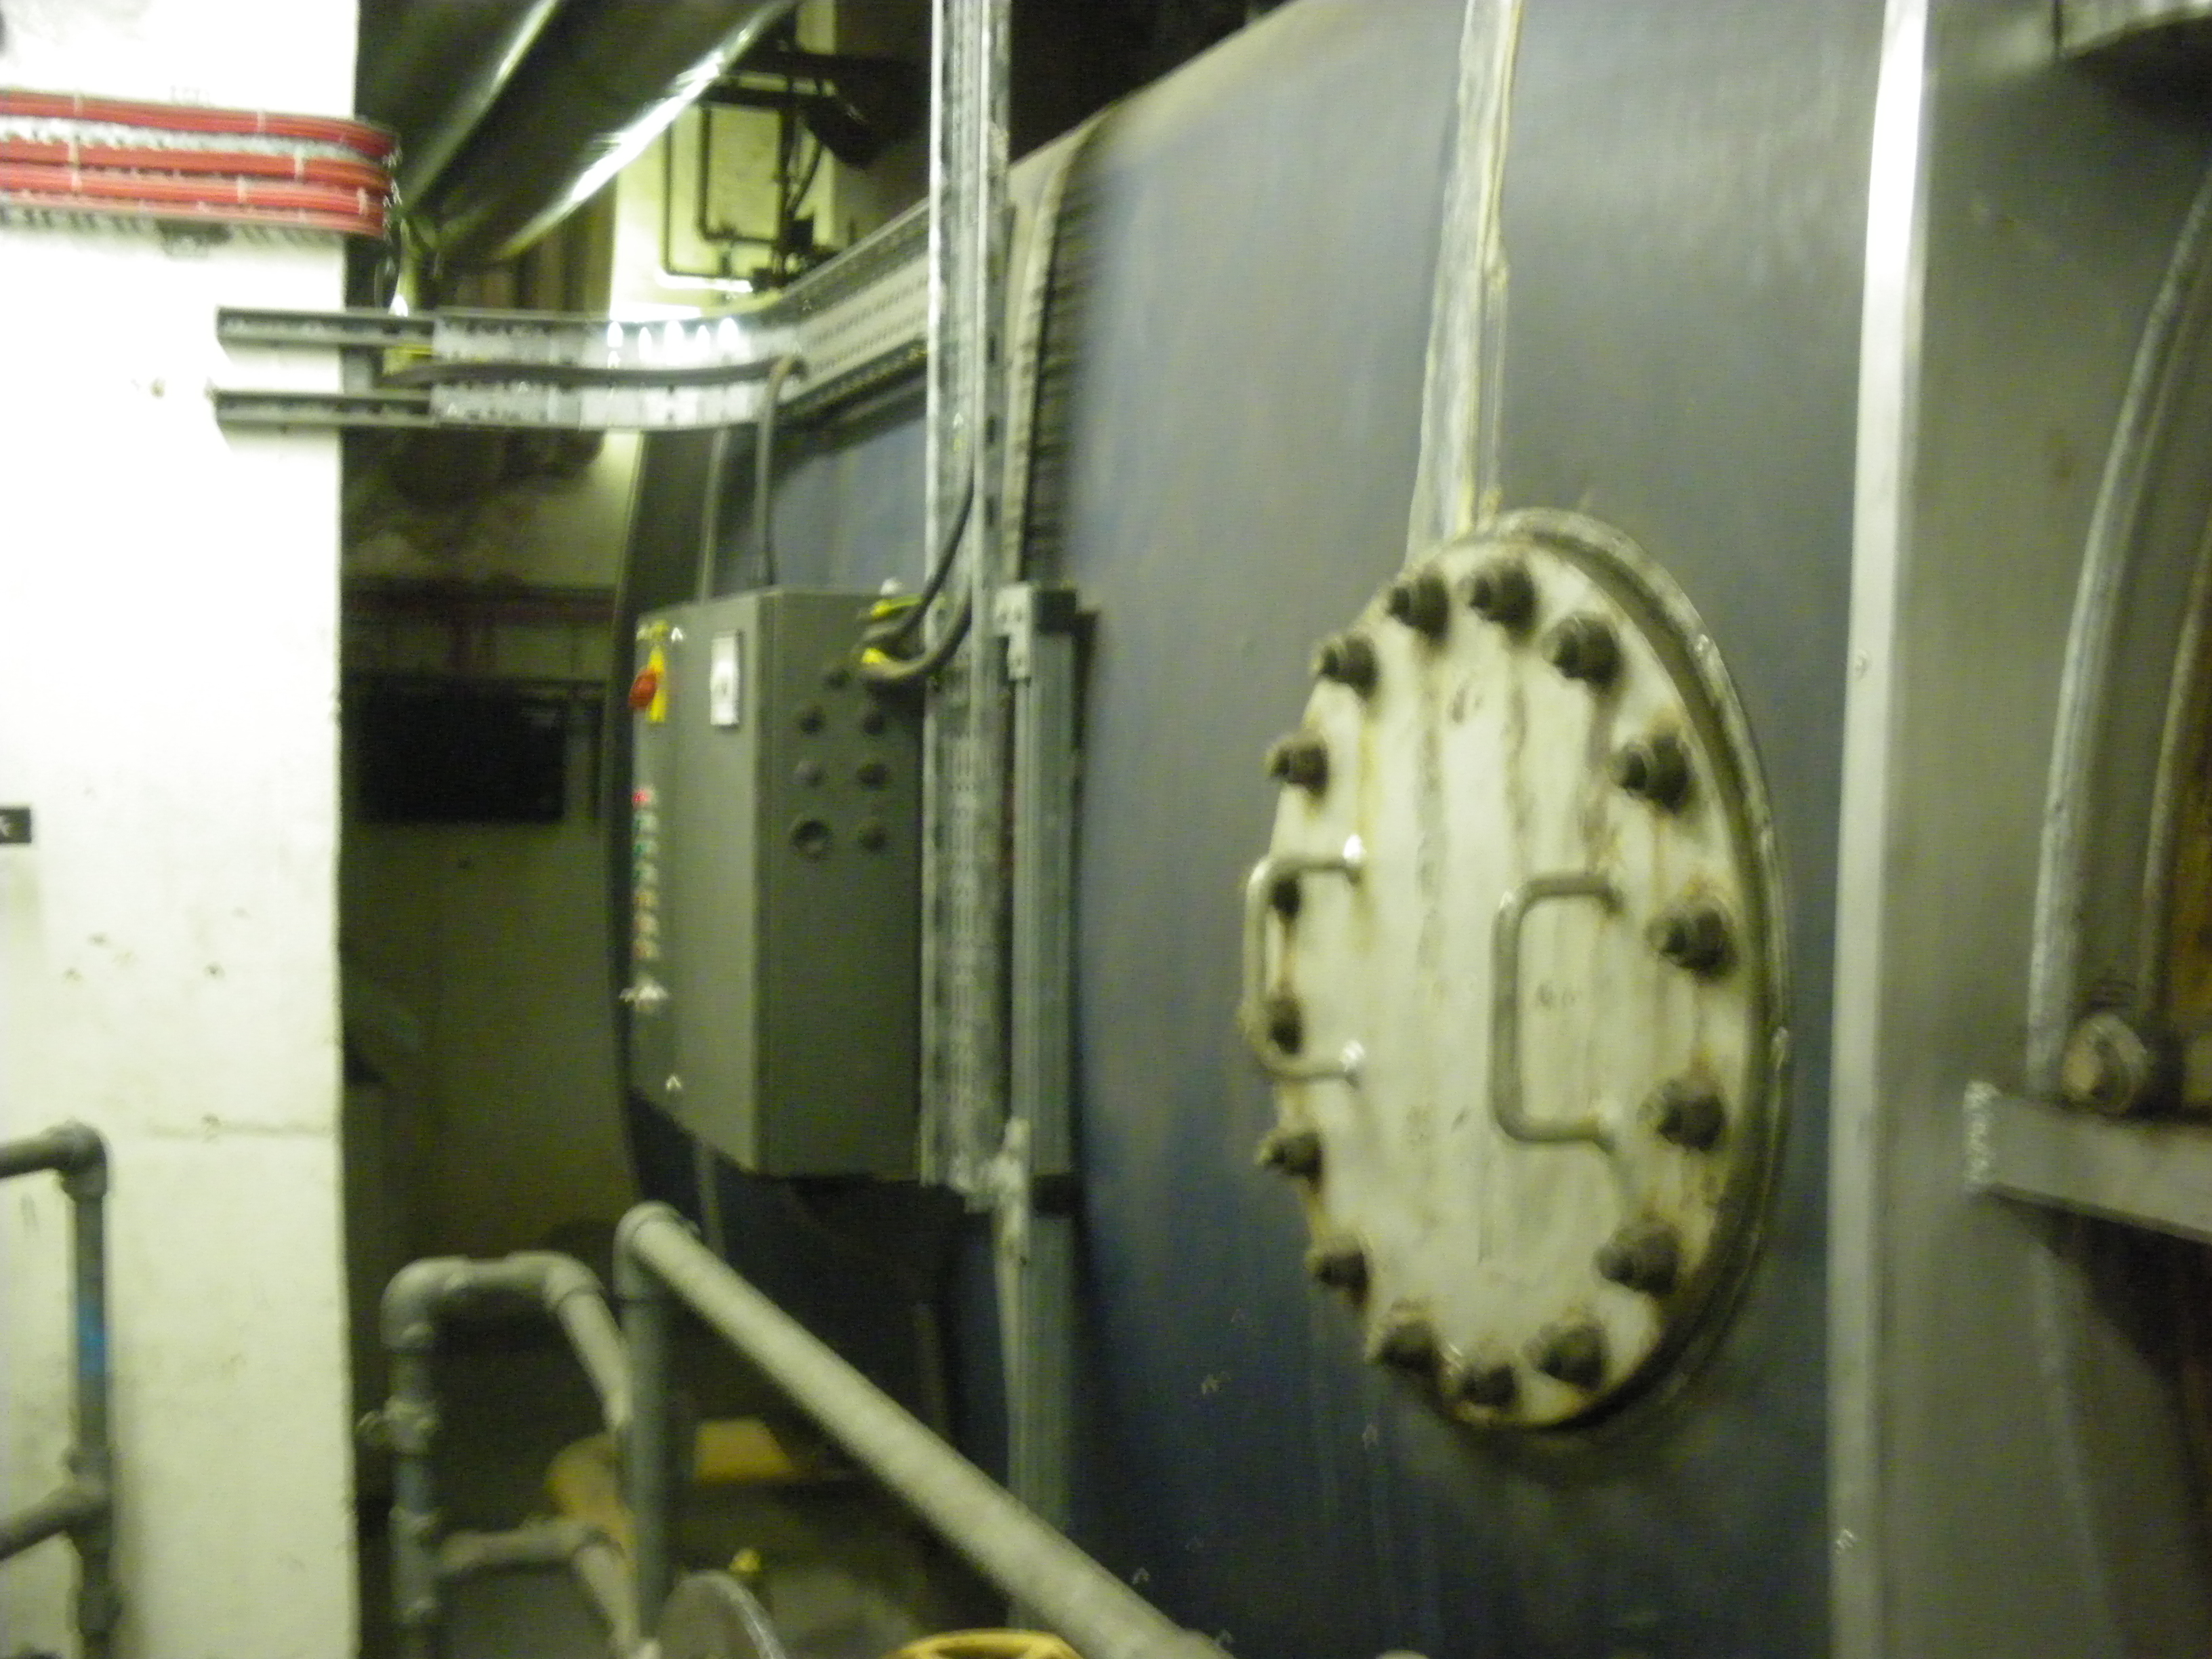 One of the two 1980s gas-fired boilers